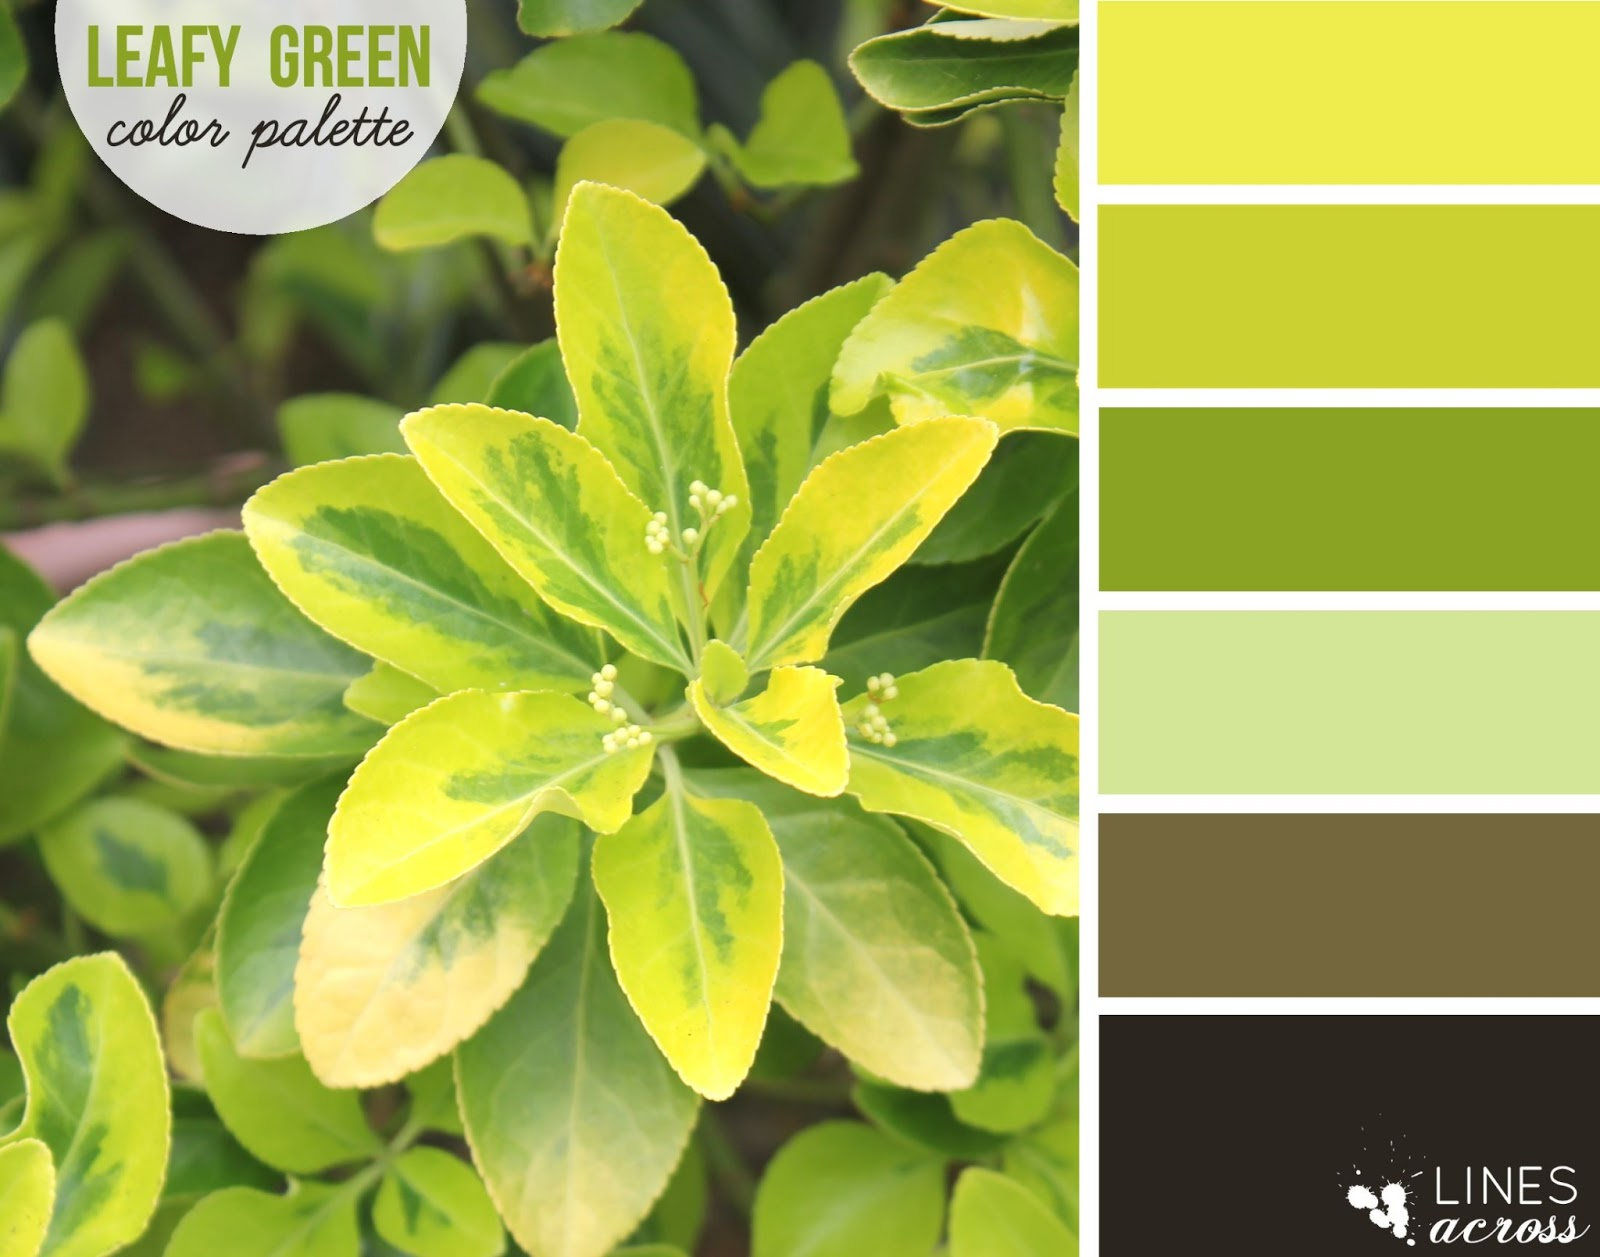 Leafy Green Color Palette